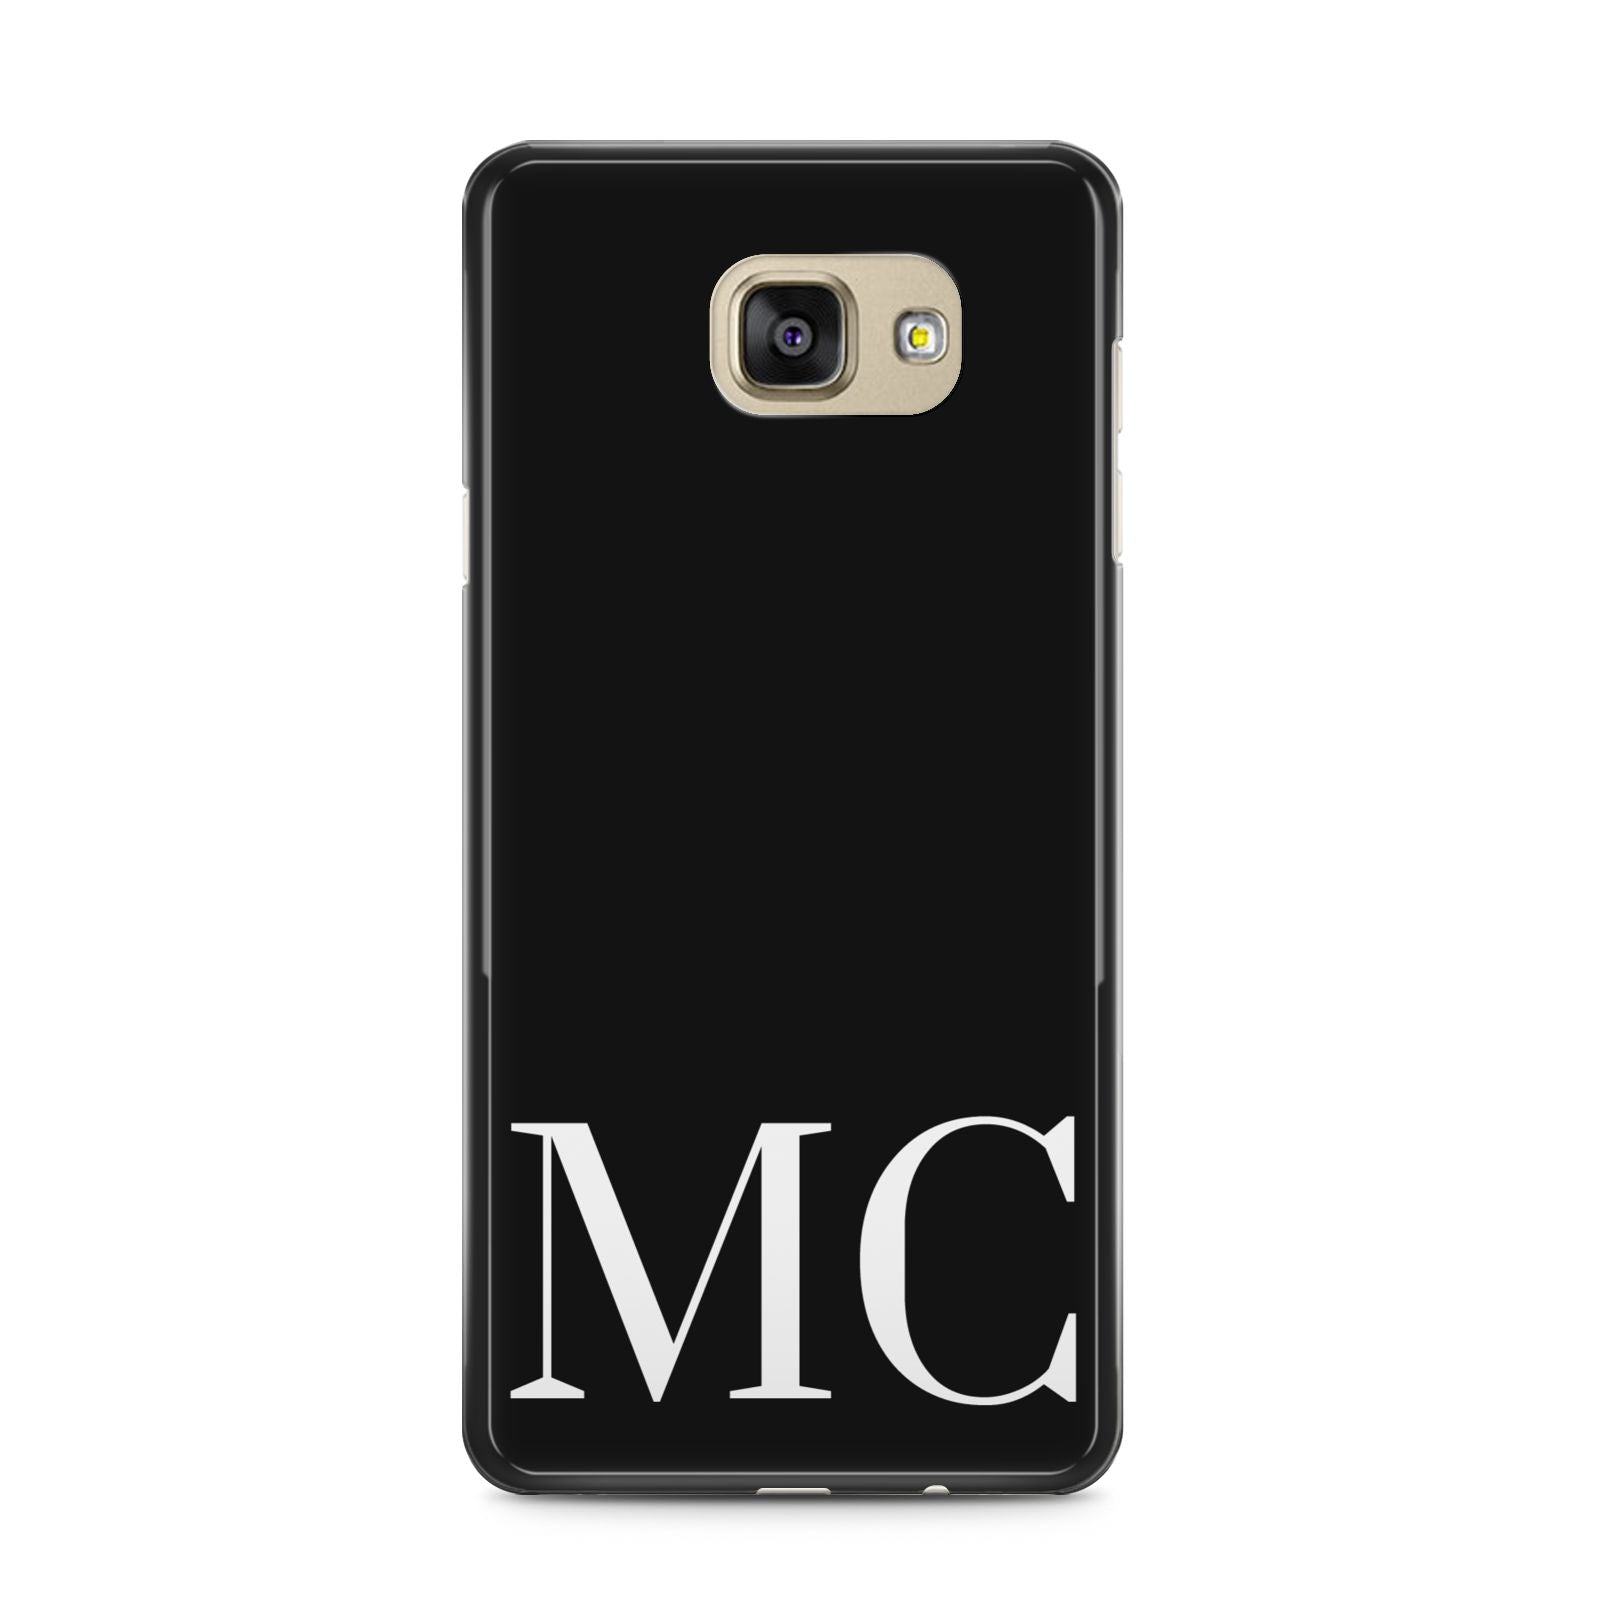 Initials Personalised 1 Samsung Galaxy A5 2016 Case on gold phone